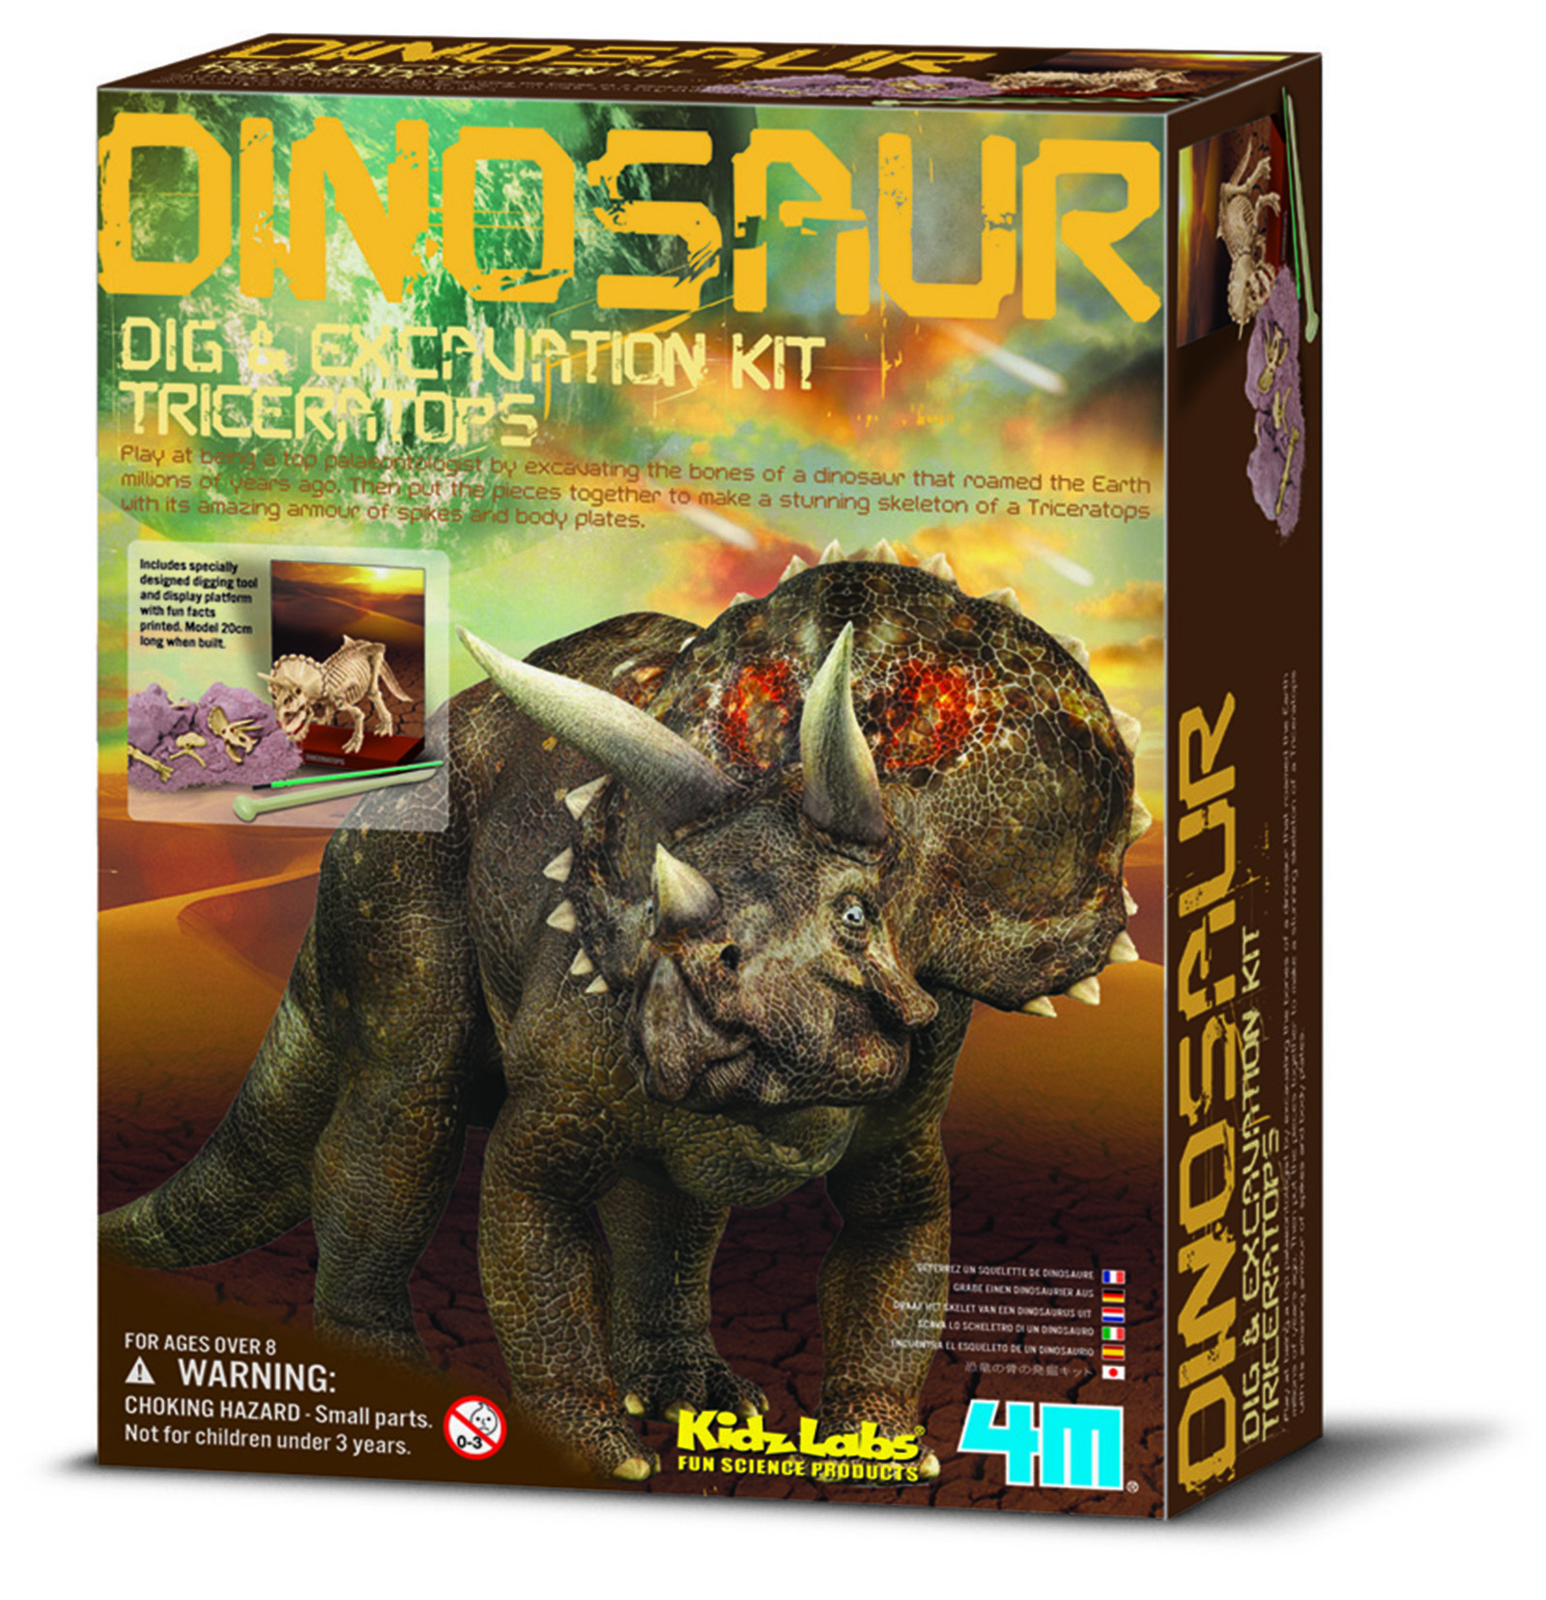 e4860675b 4M - Dig a Dinosaur - Triceratops - Switched on kids